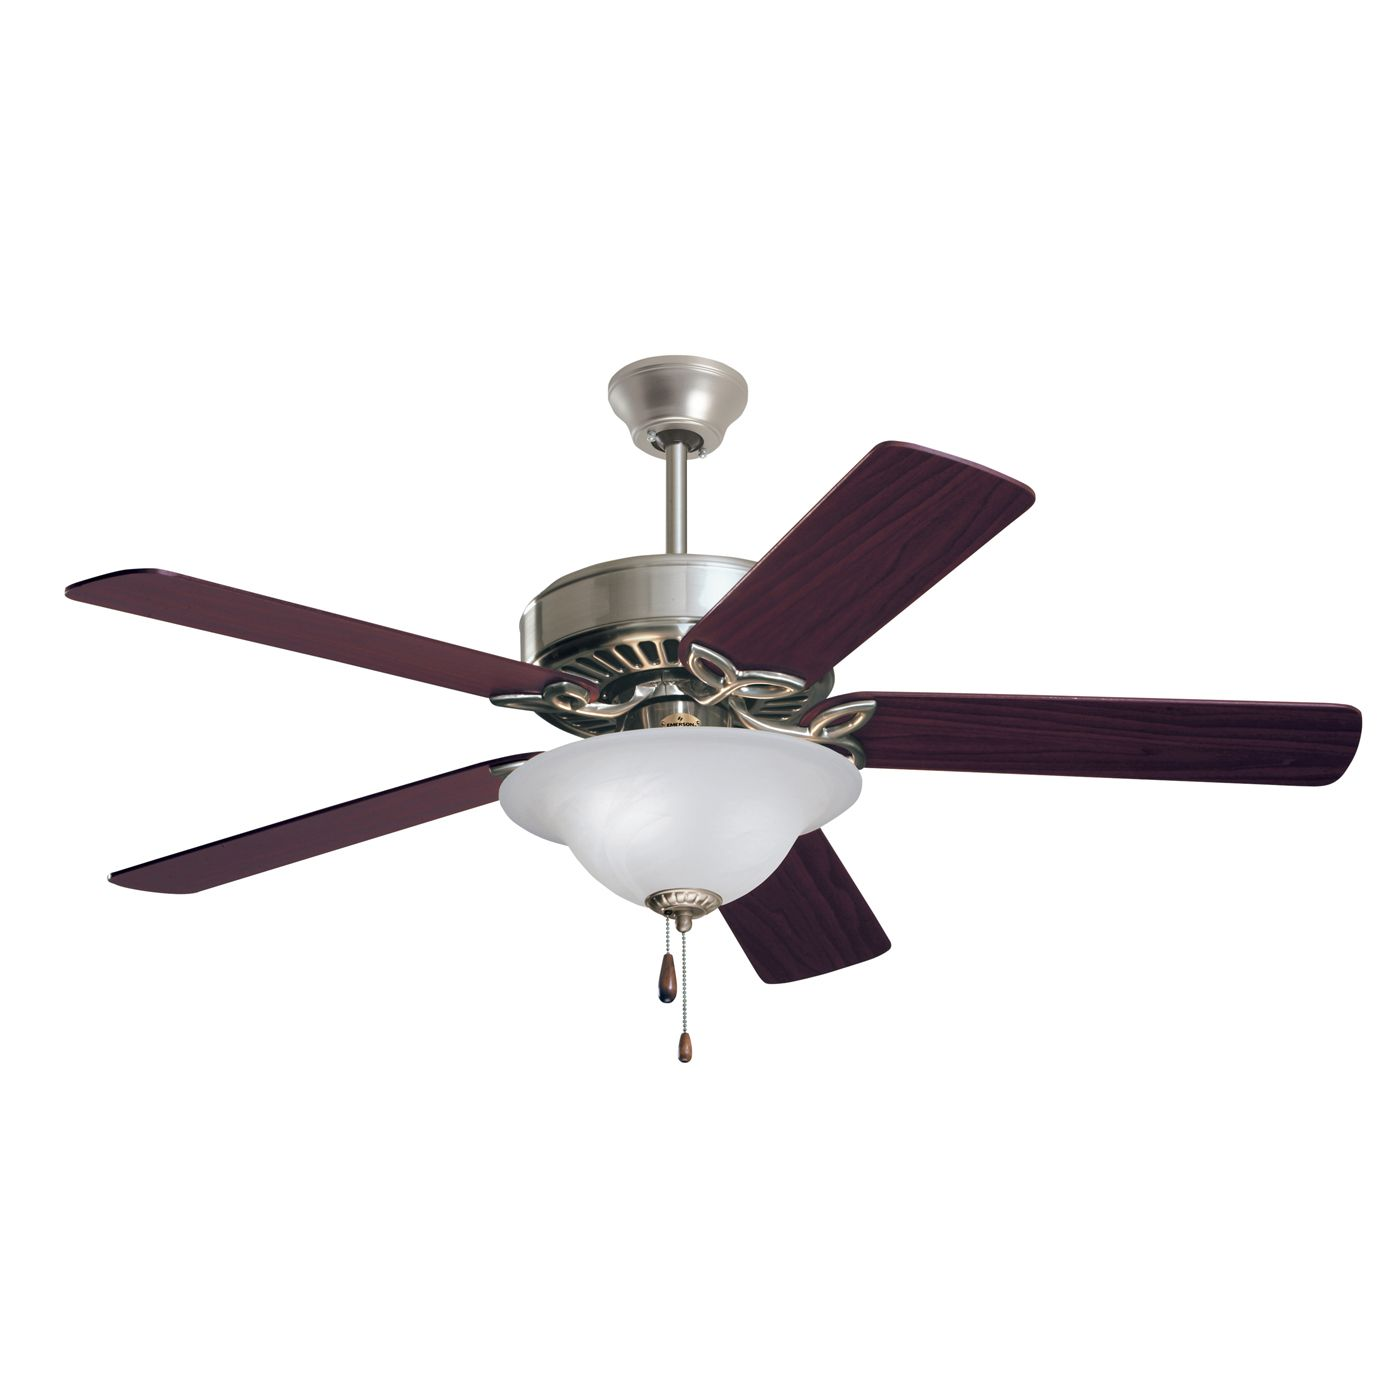 Emerson electric cf712 3 light 50 in ceiling fan atg stores emerson electric cf712 3 light 50 in ceiling fan atg stores aloadofball Image collections